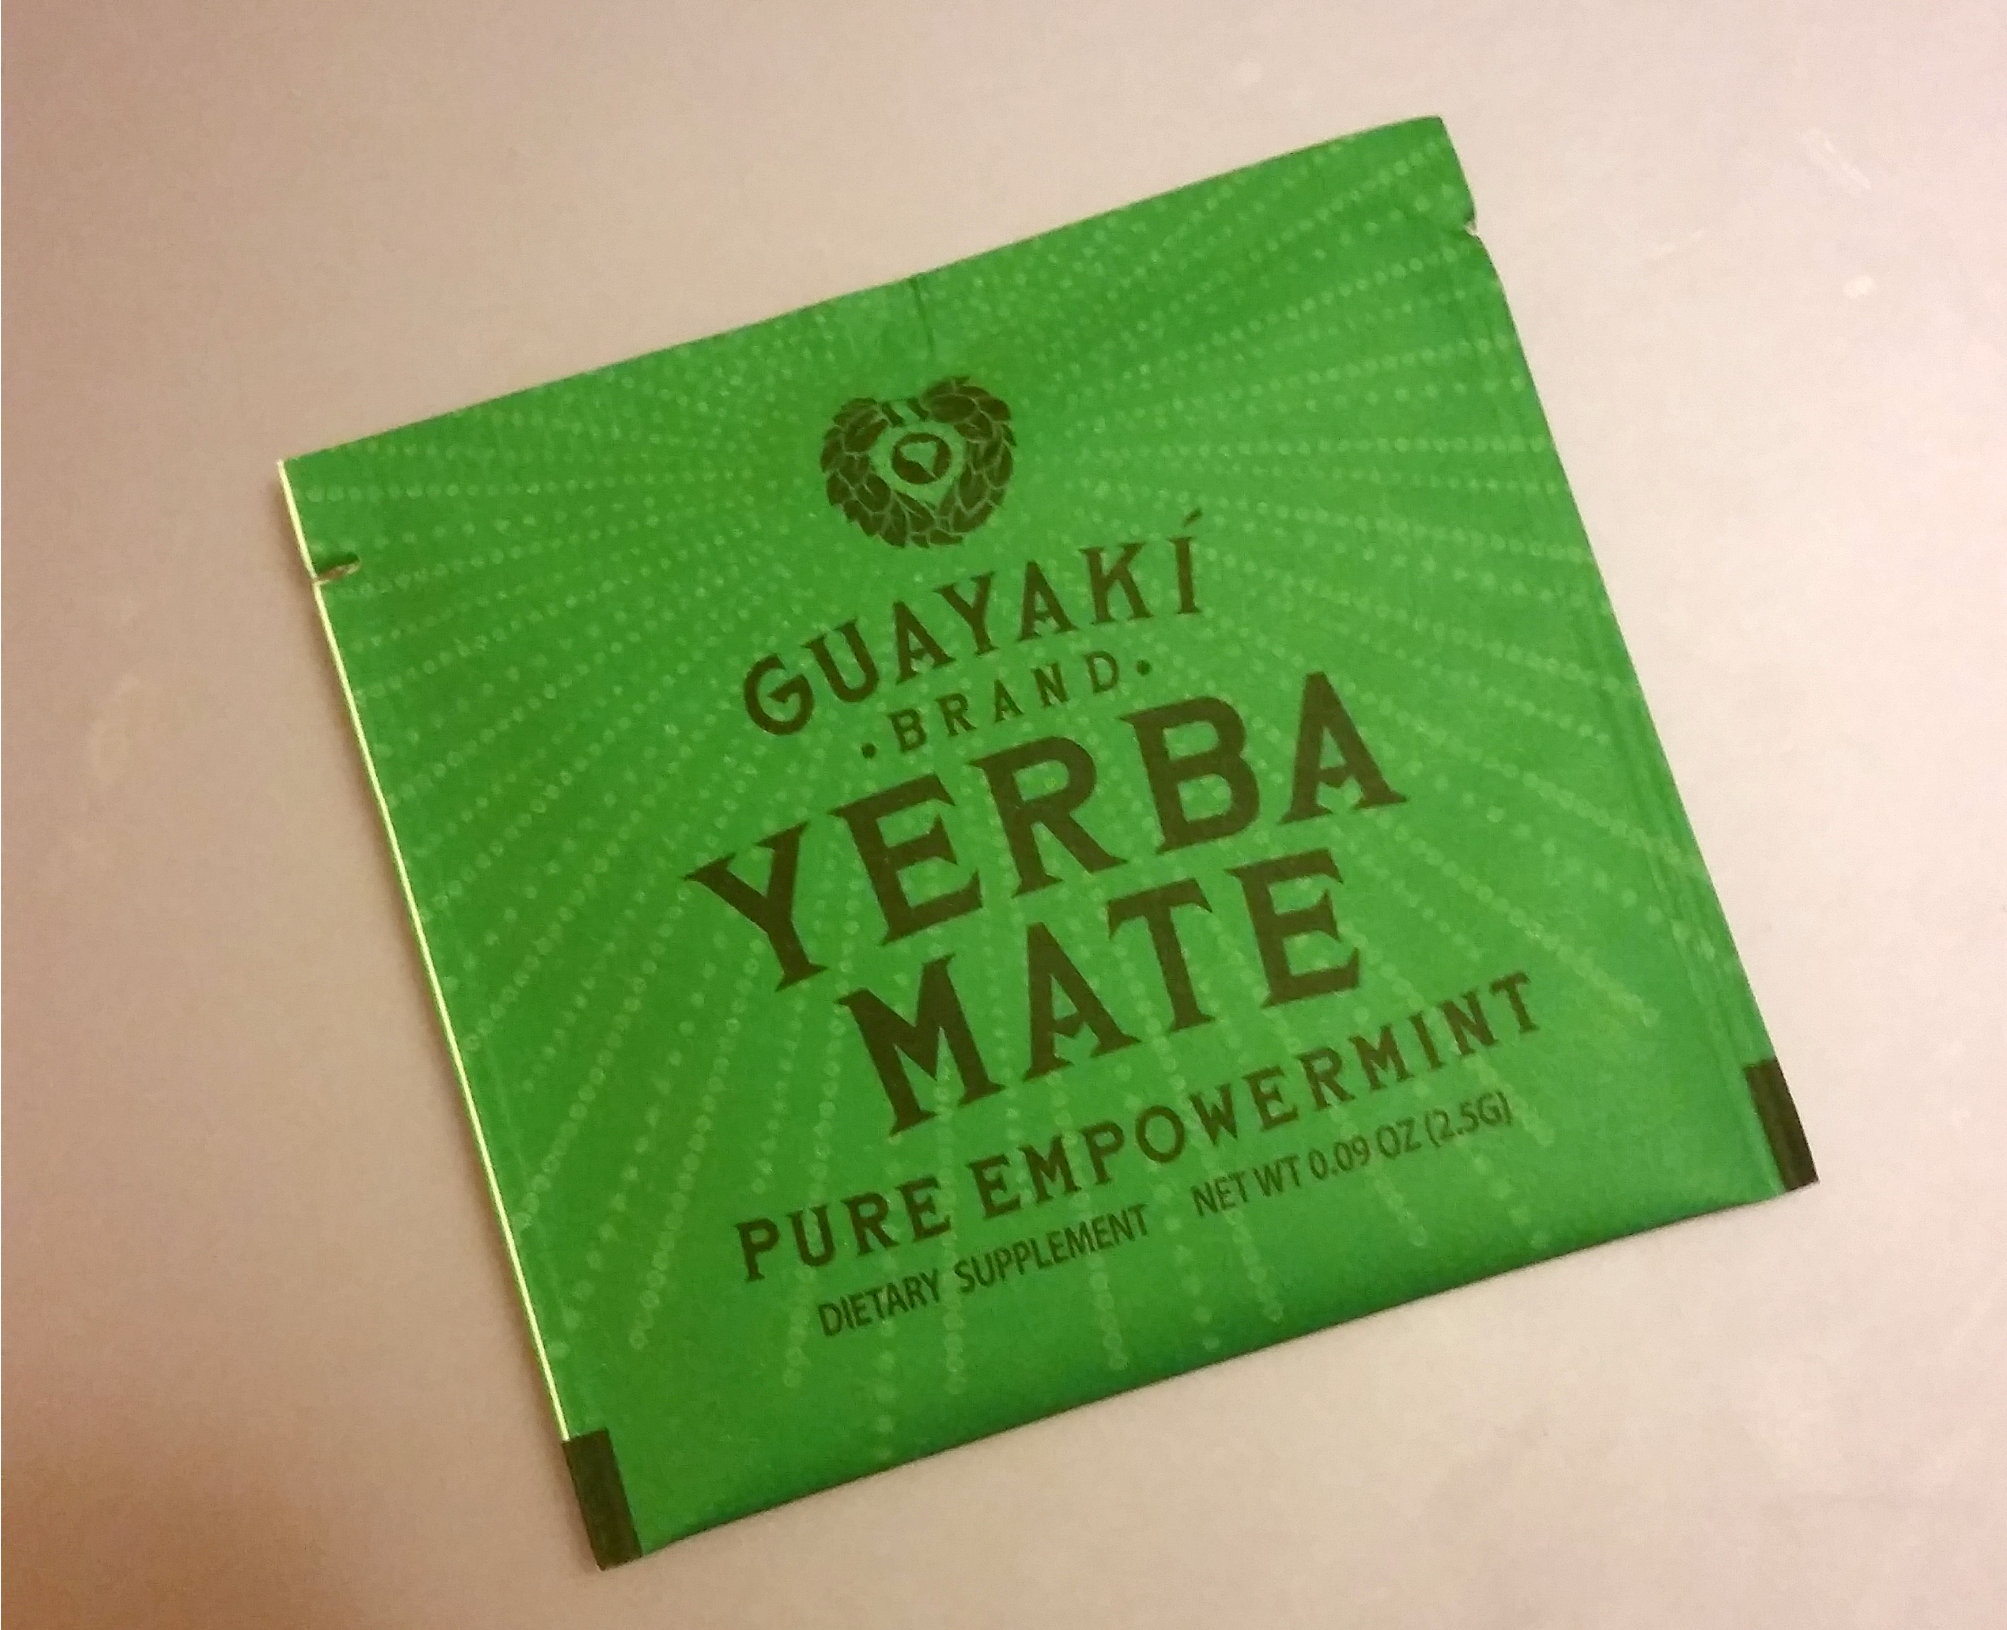 Image of Empowermint Tea Bag from Yerba Mate